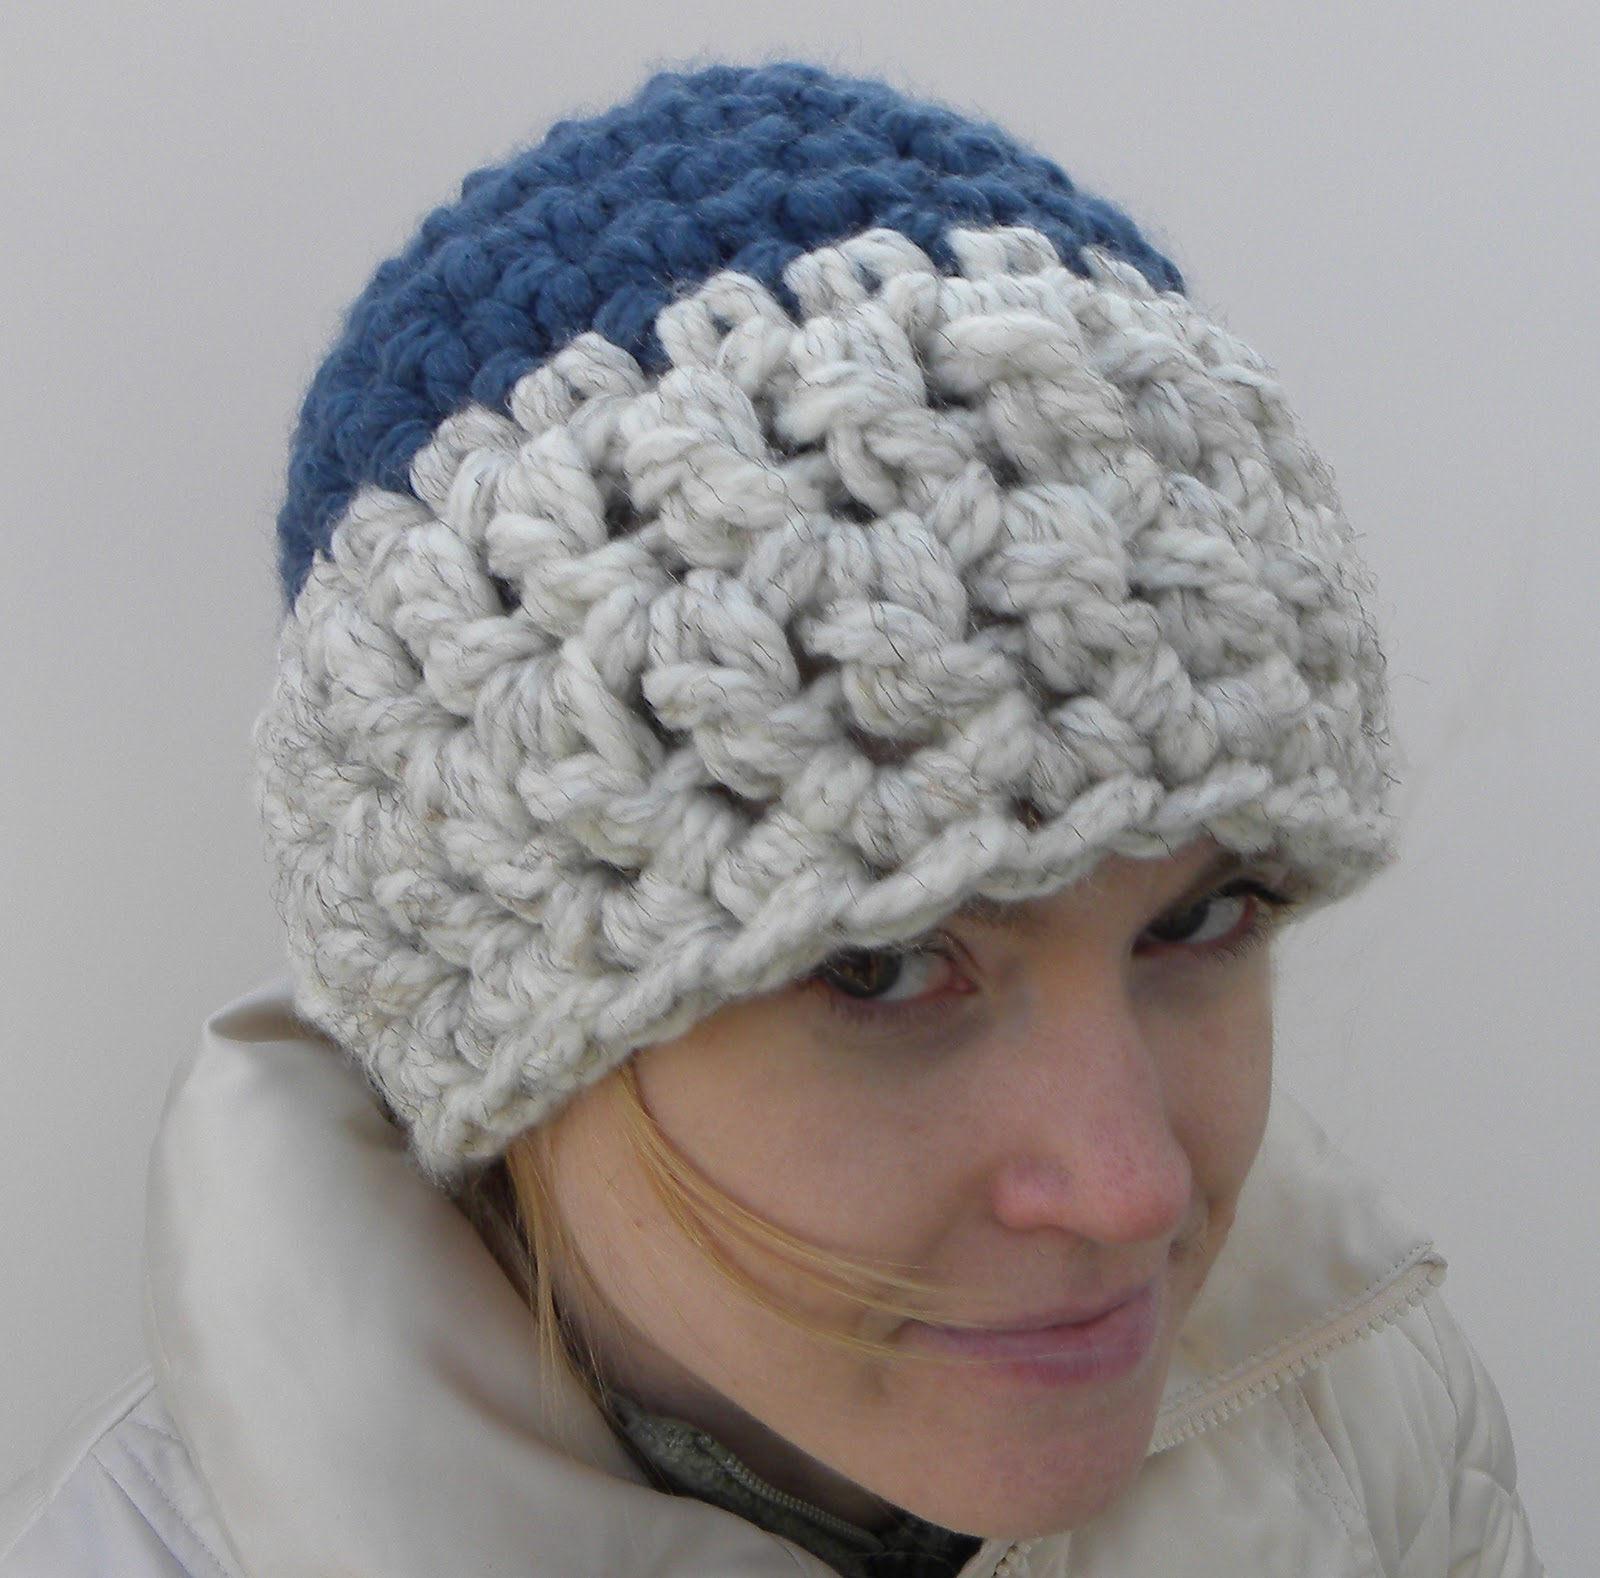 Crocheting Hats : flower Gurl crafts: Crochet Beanie Hat